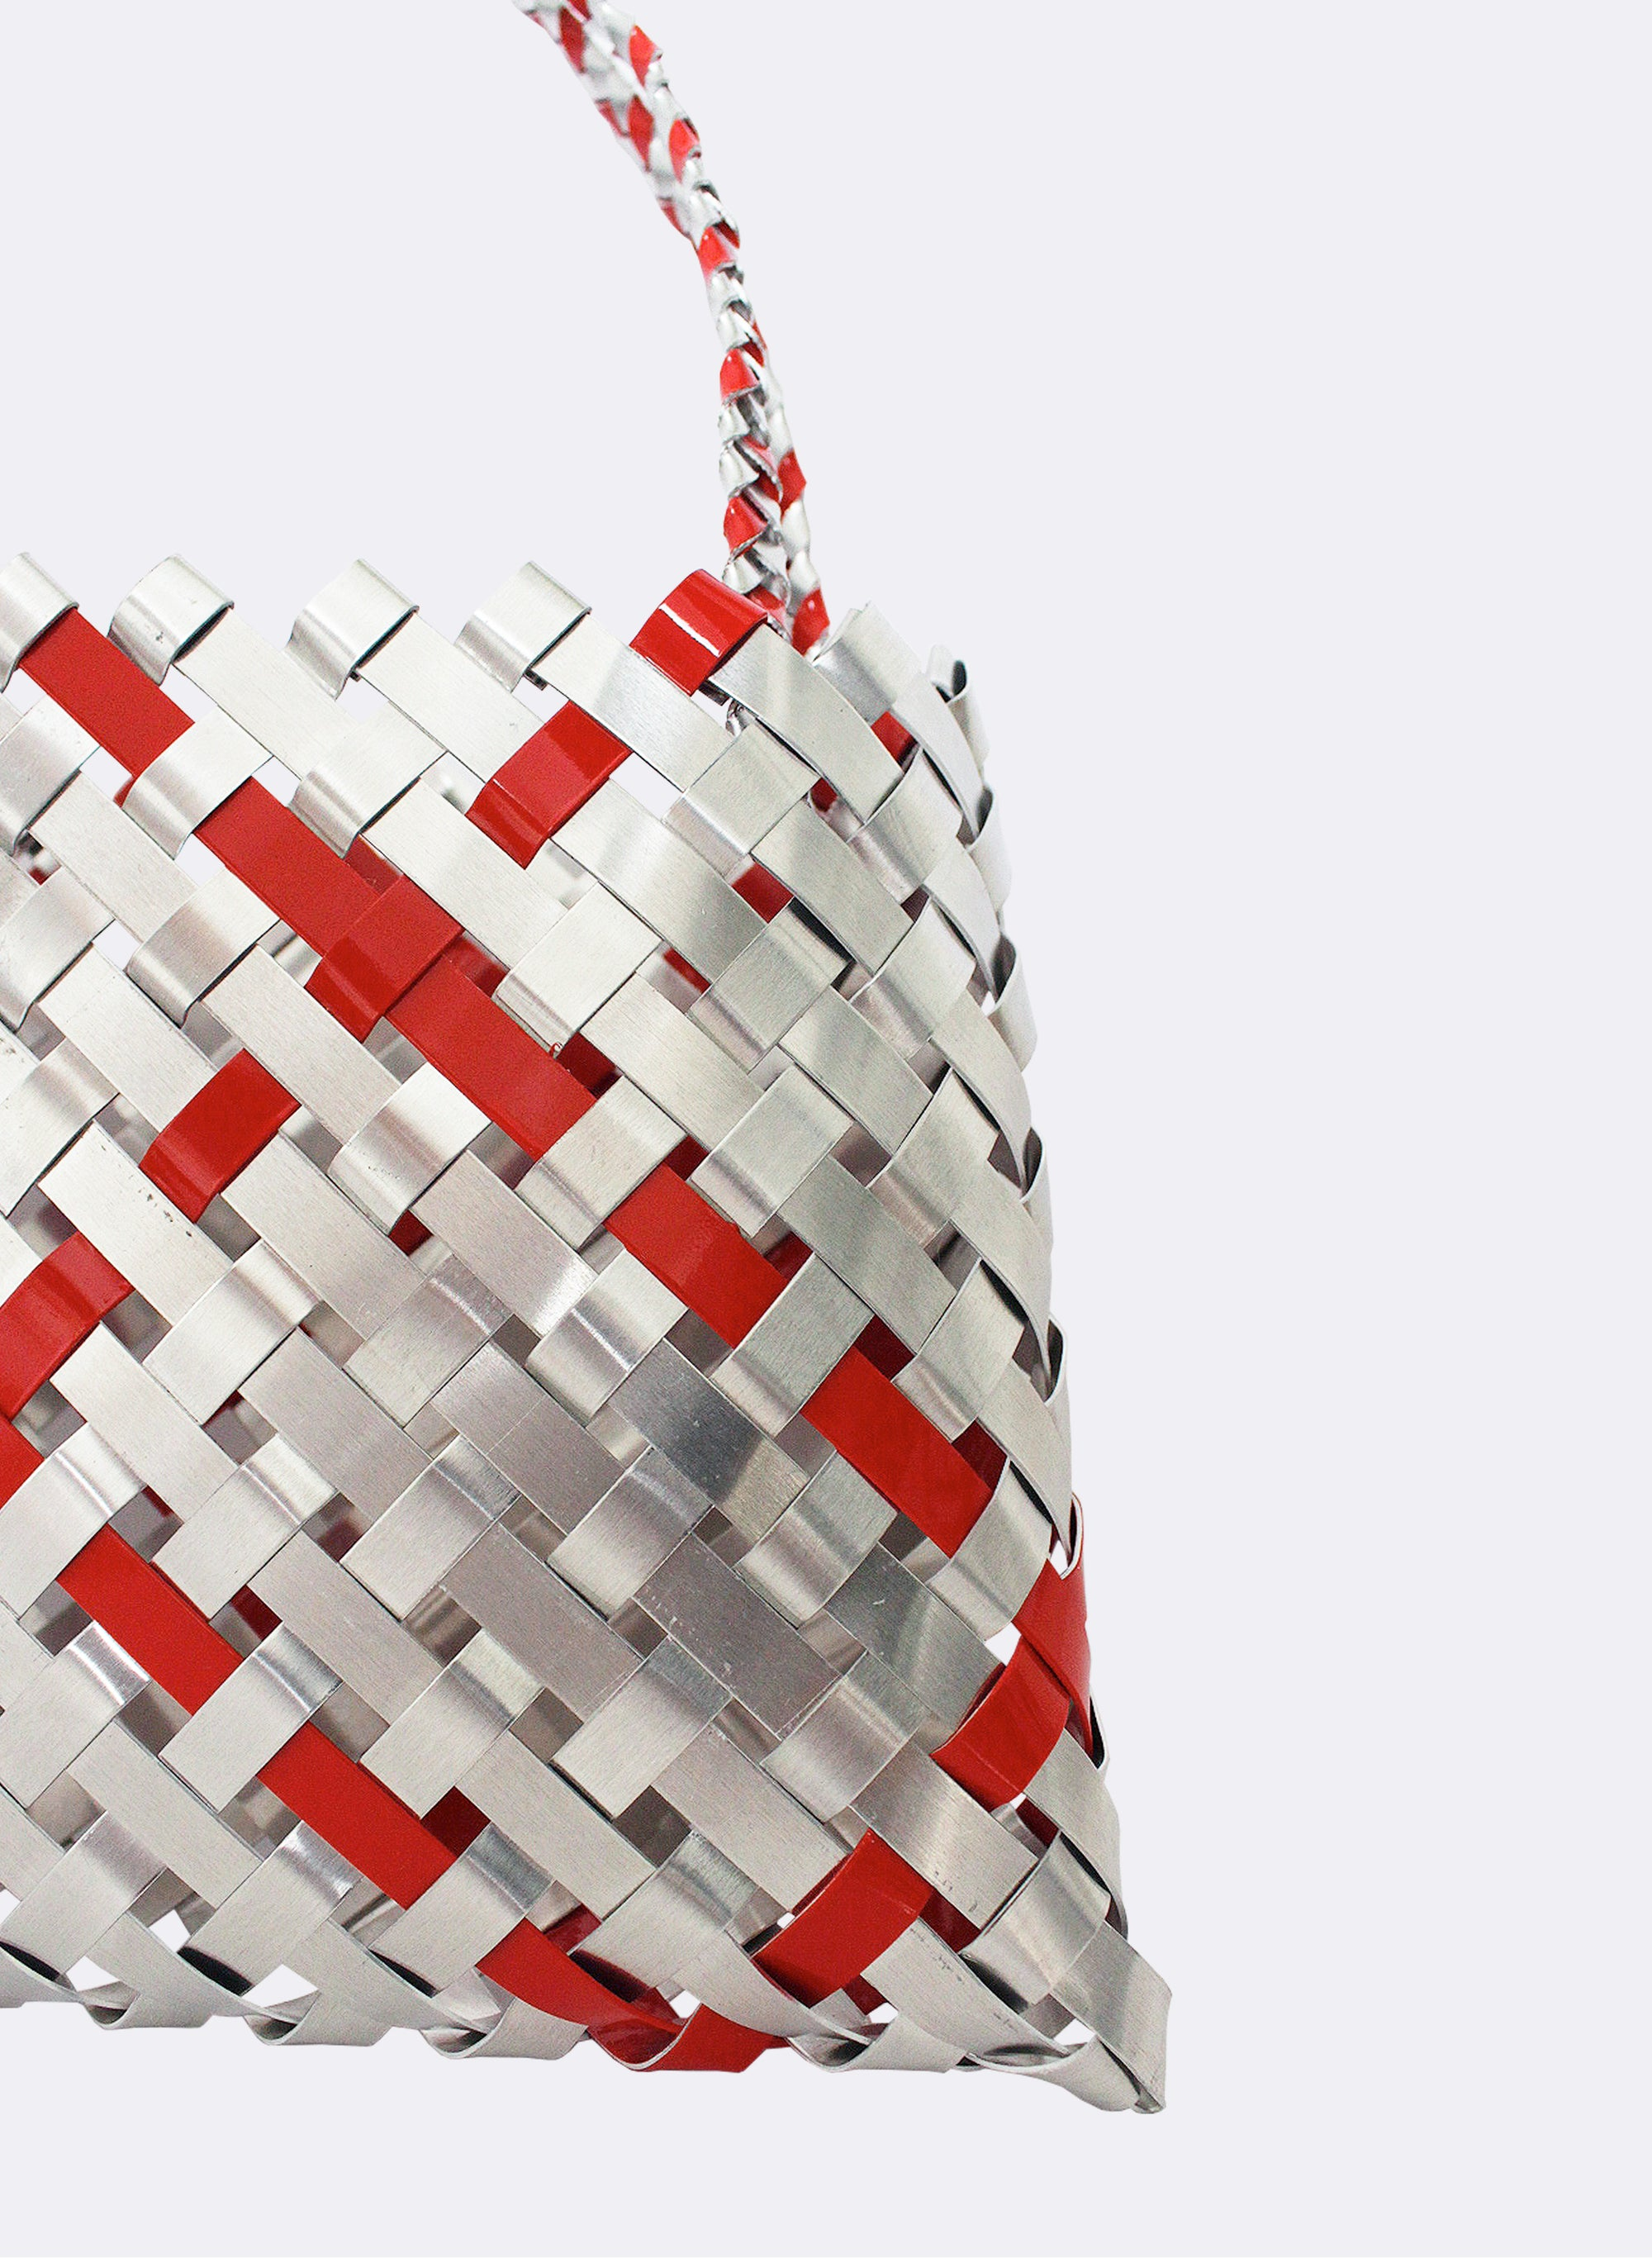 Aluminium And Red Kete (12 End)